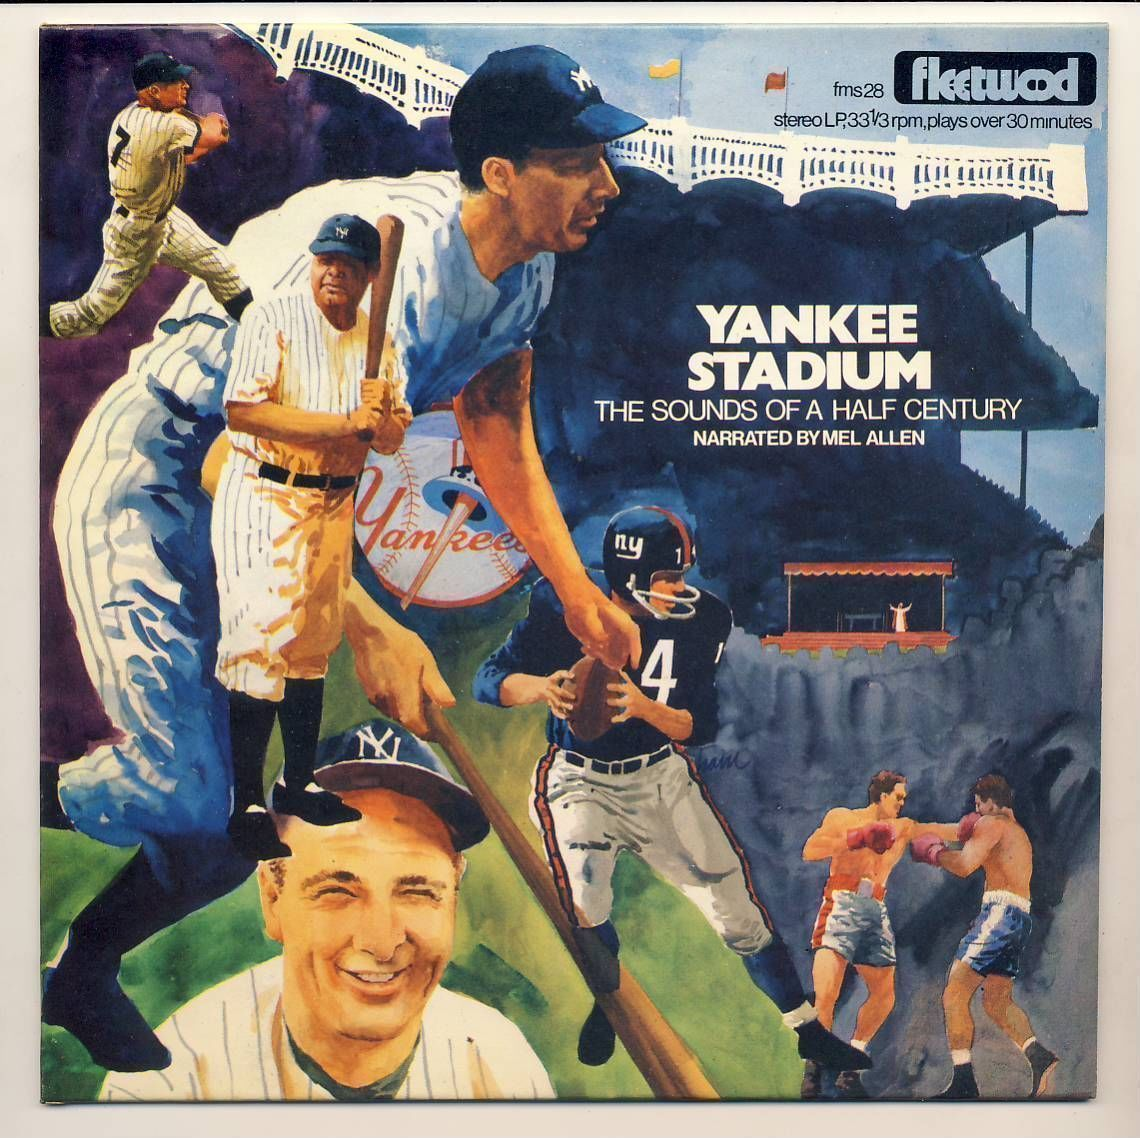 Album Cover For Yankee Stadium The Sounds Of Half A Century 1978 Narrated By Mel Allen With Images Yankee Stadium Yankees Stadium